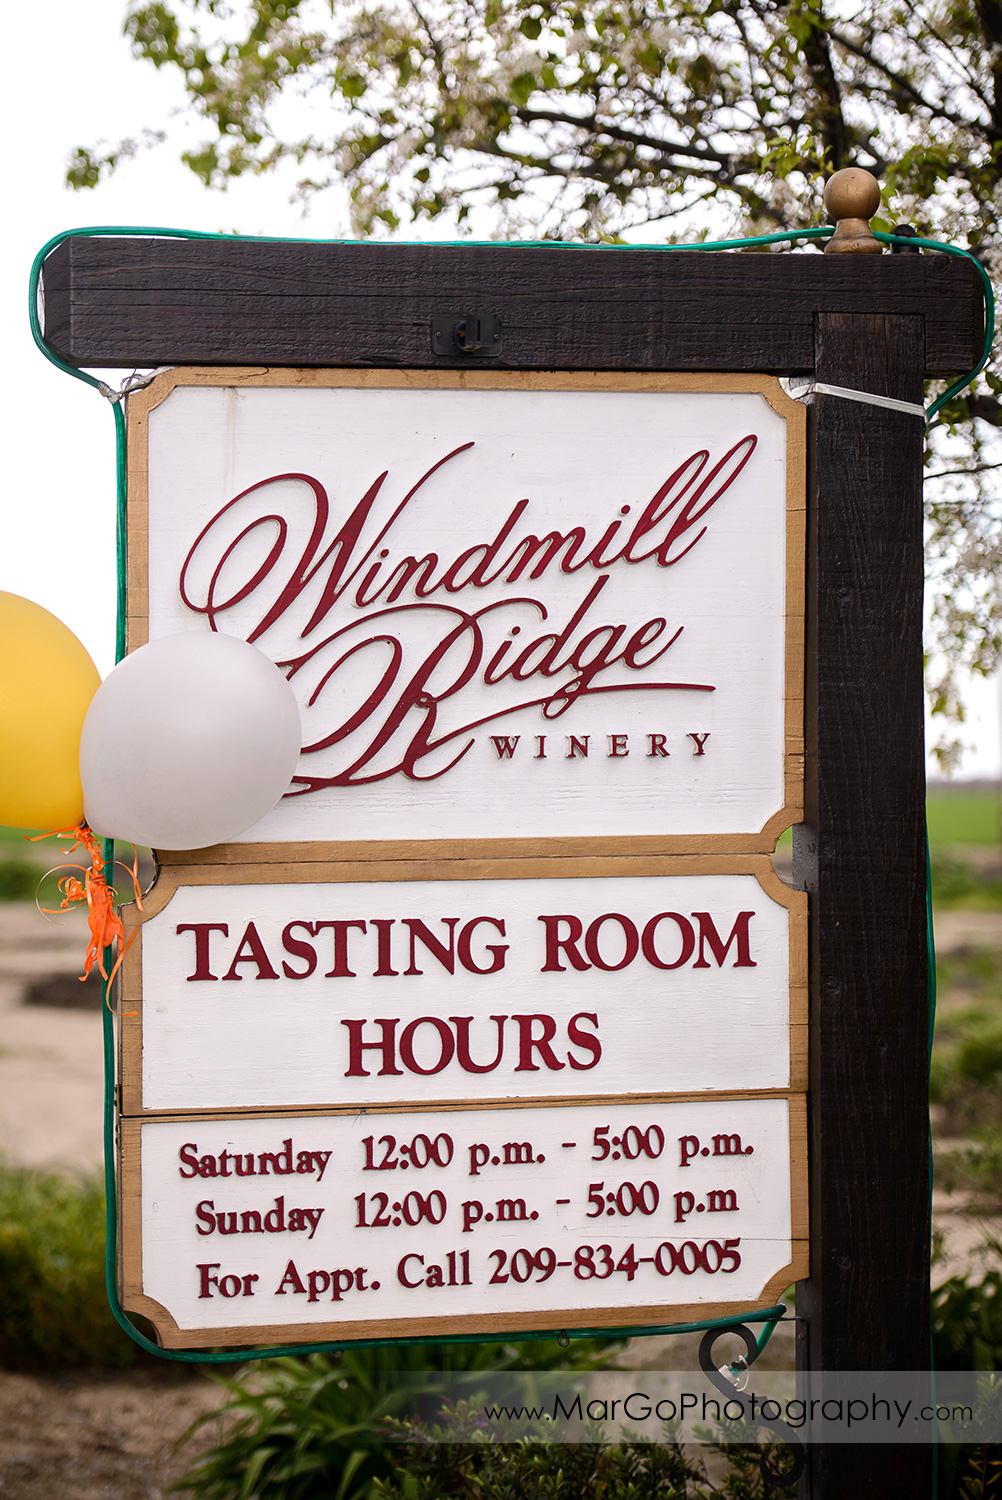 Windmill Ridge Winery sign